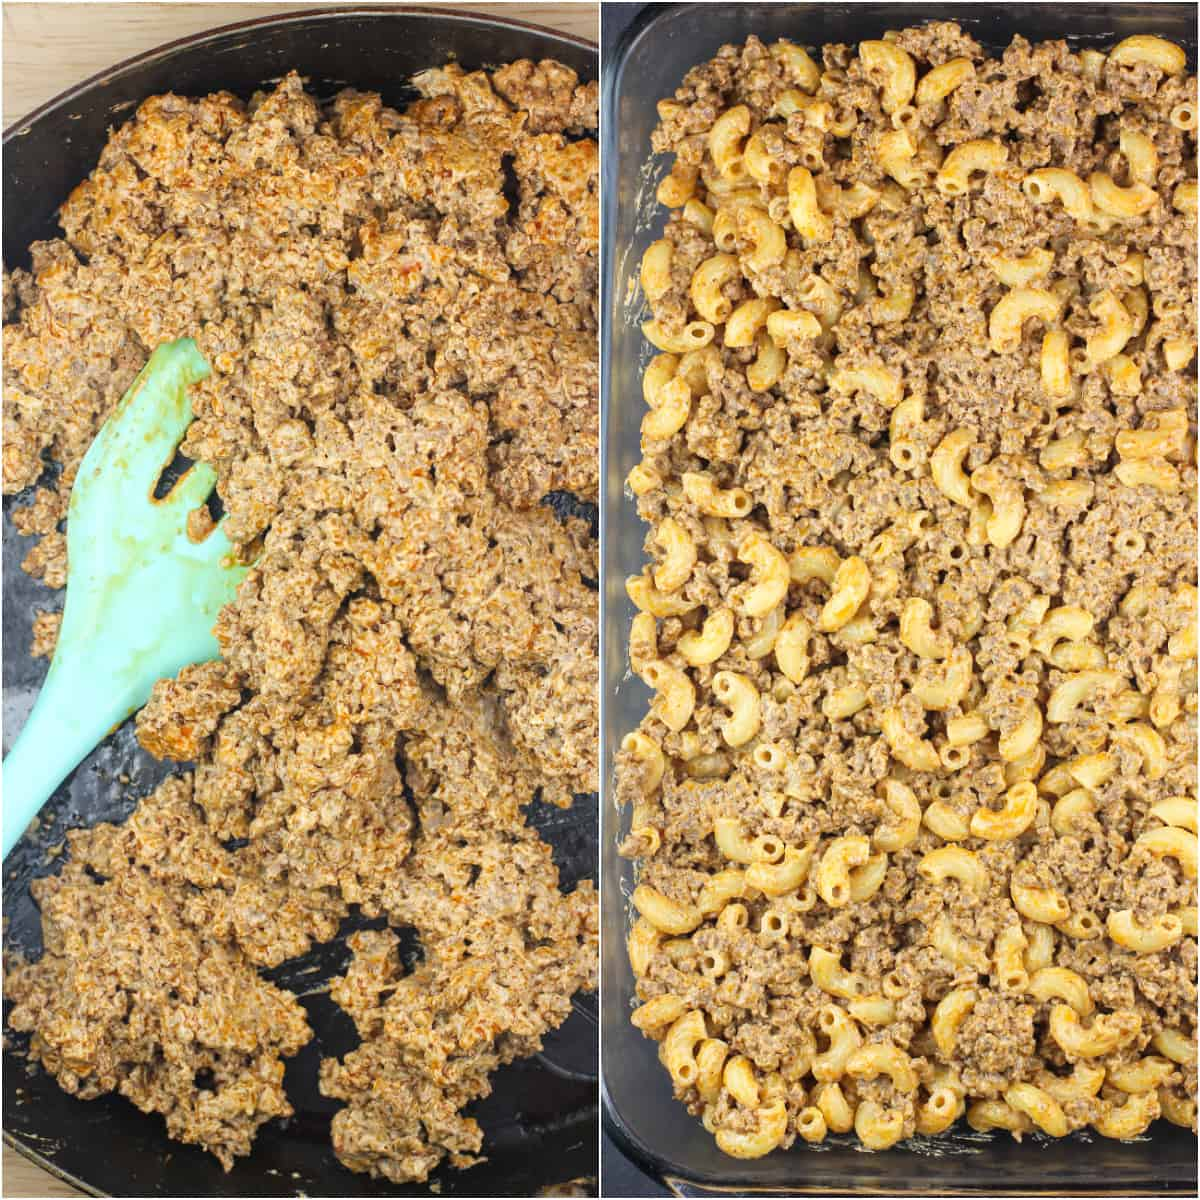 collage of 2 photos: left, beff-cream cheese mixture in skillet; right, beef and macaroni layer in back dish